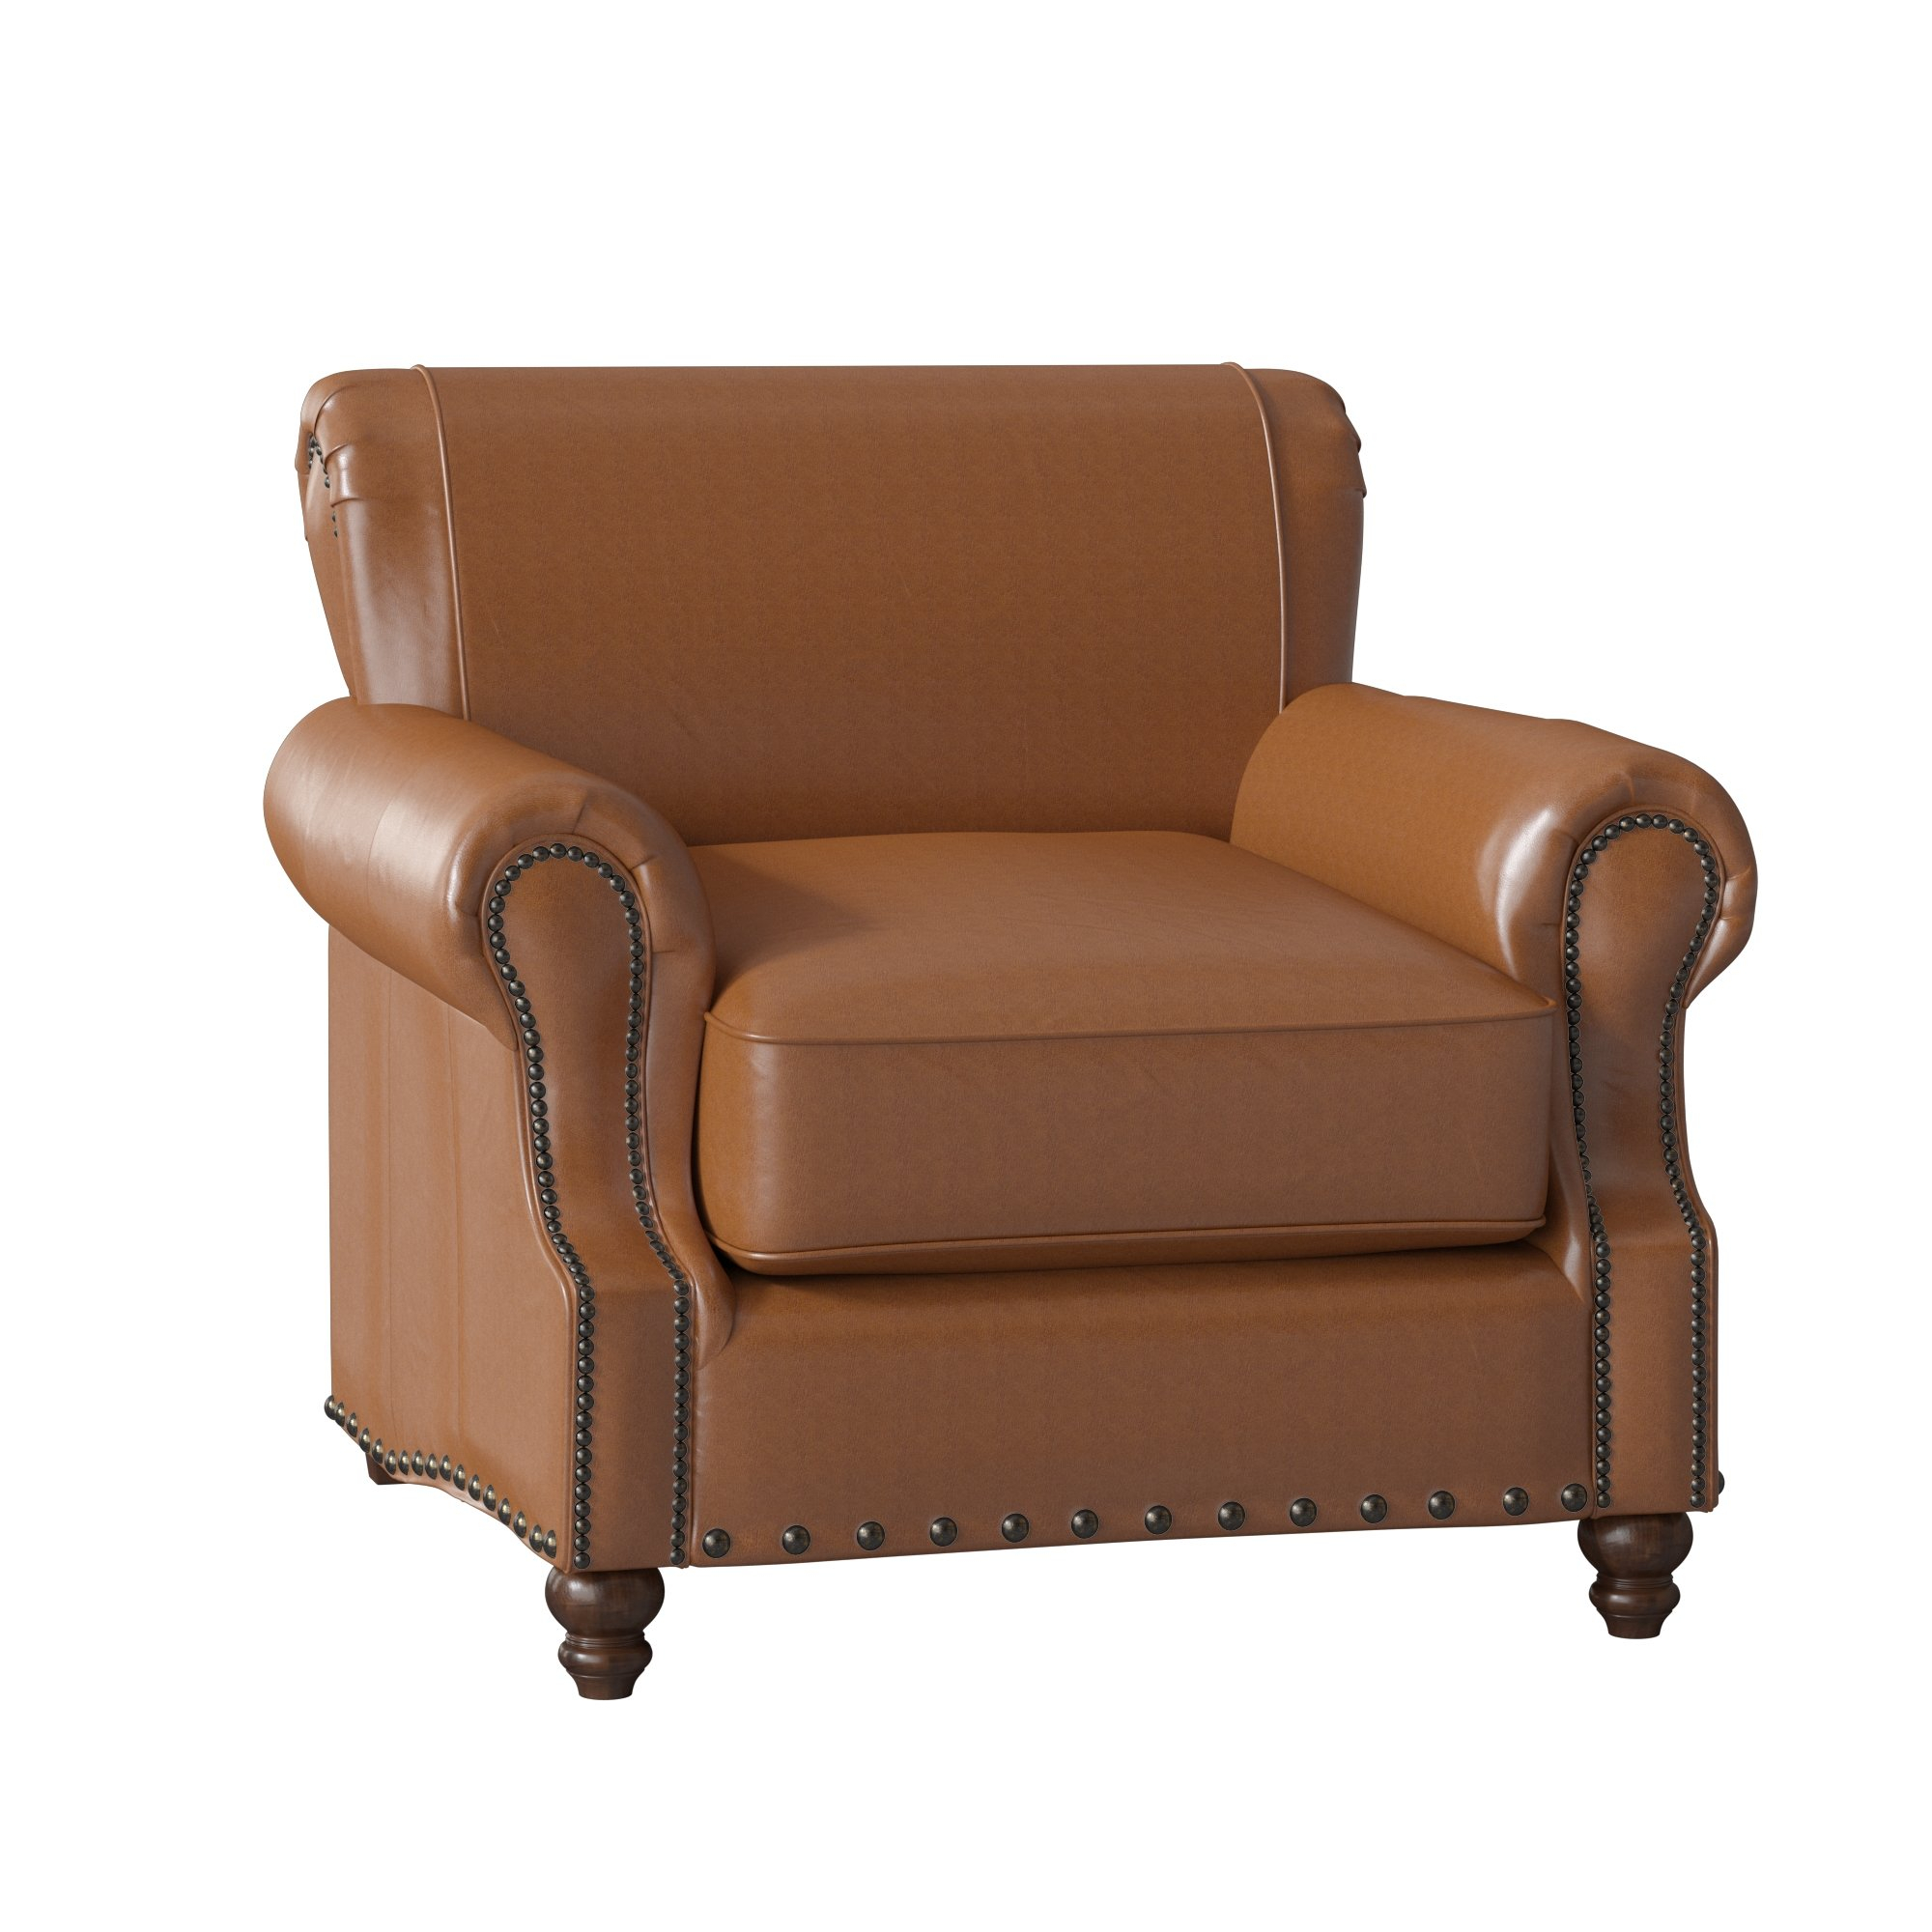 Birch Lane™ Heritage Landry Club Chair & Reviews | Birch Lane Inside Landry Sofa Chairs (Image 5 of 20)